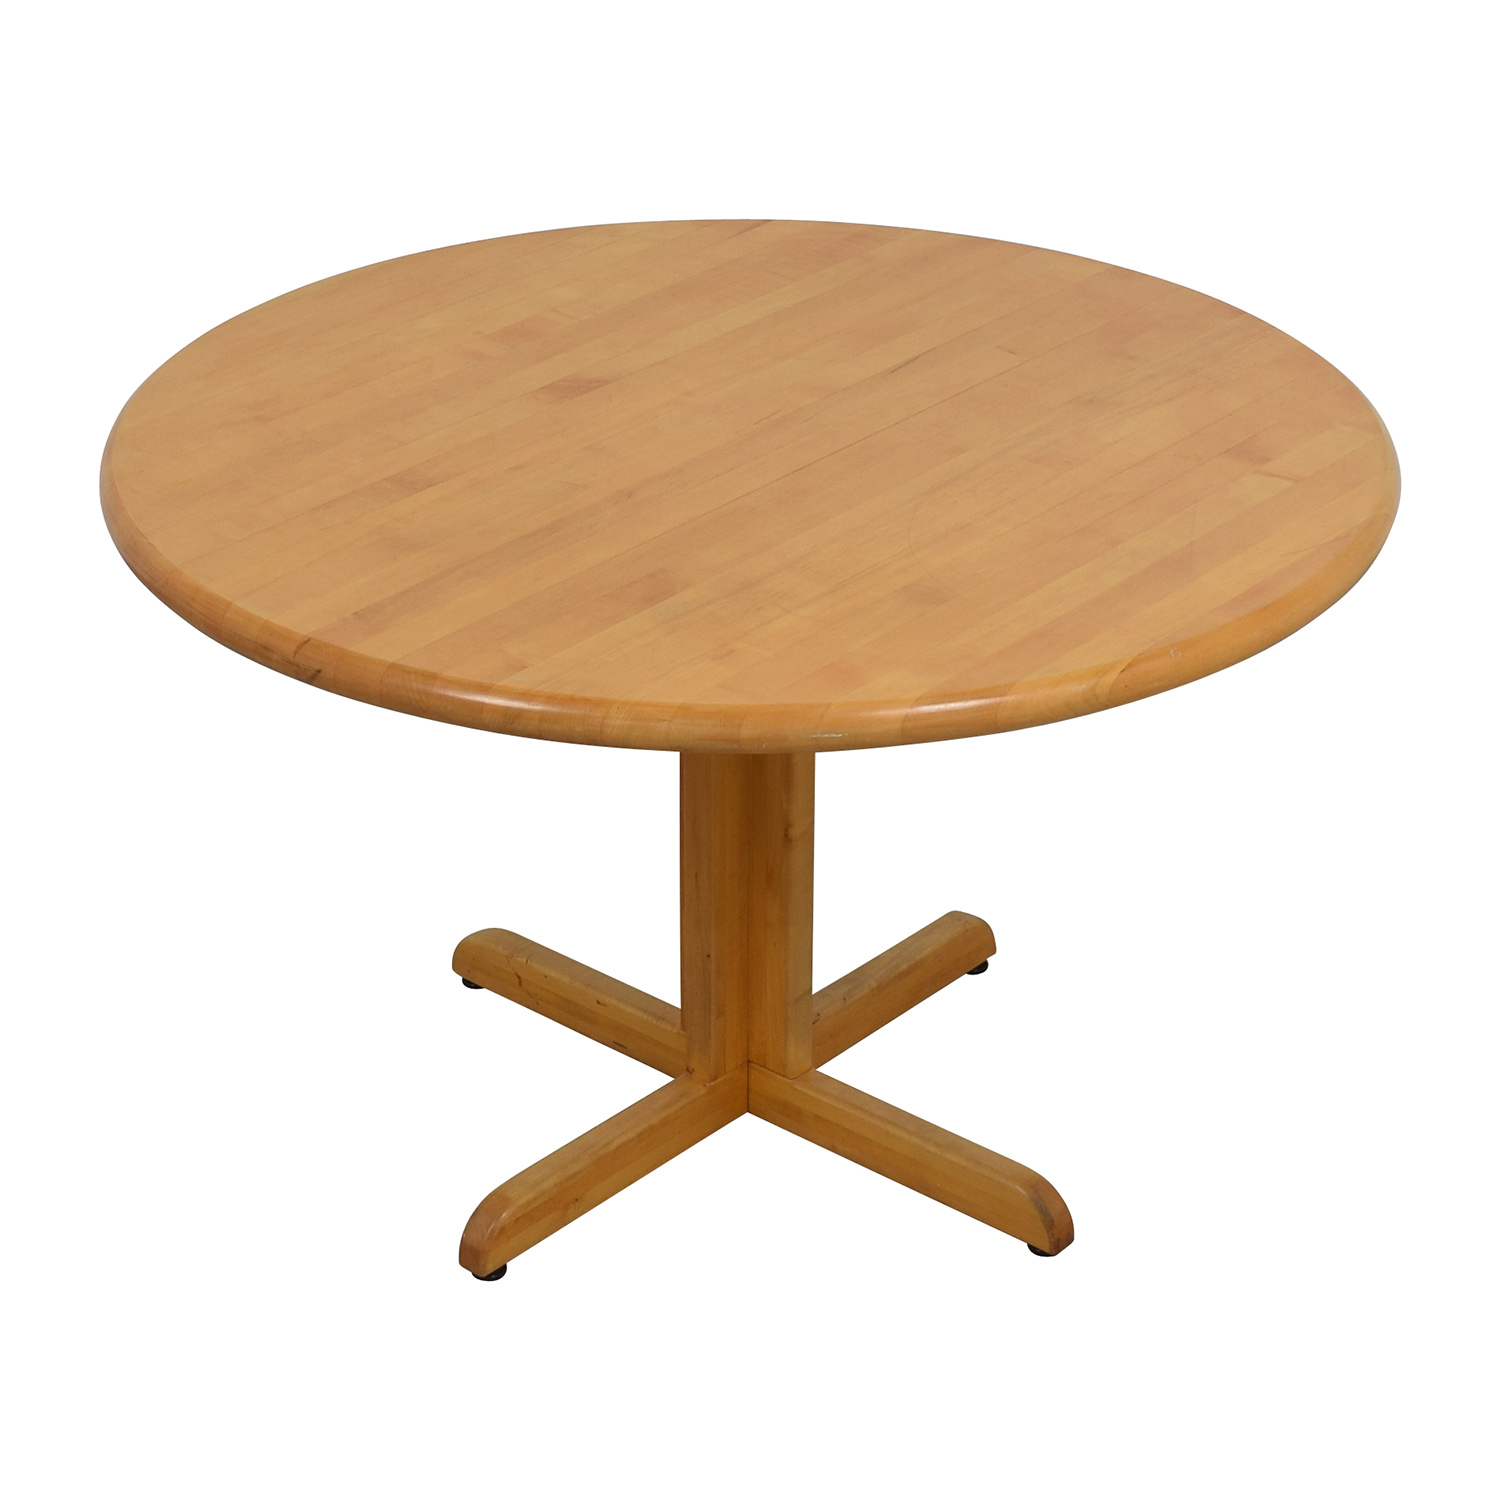 90 off solid wood round table tables for Table circle